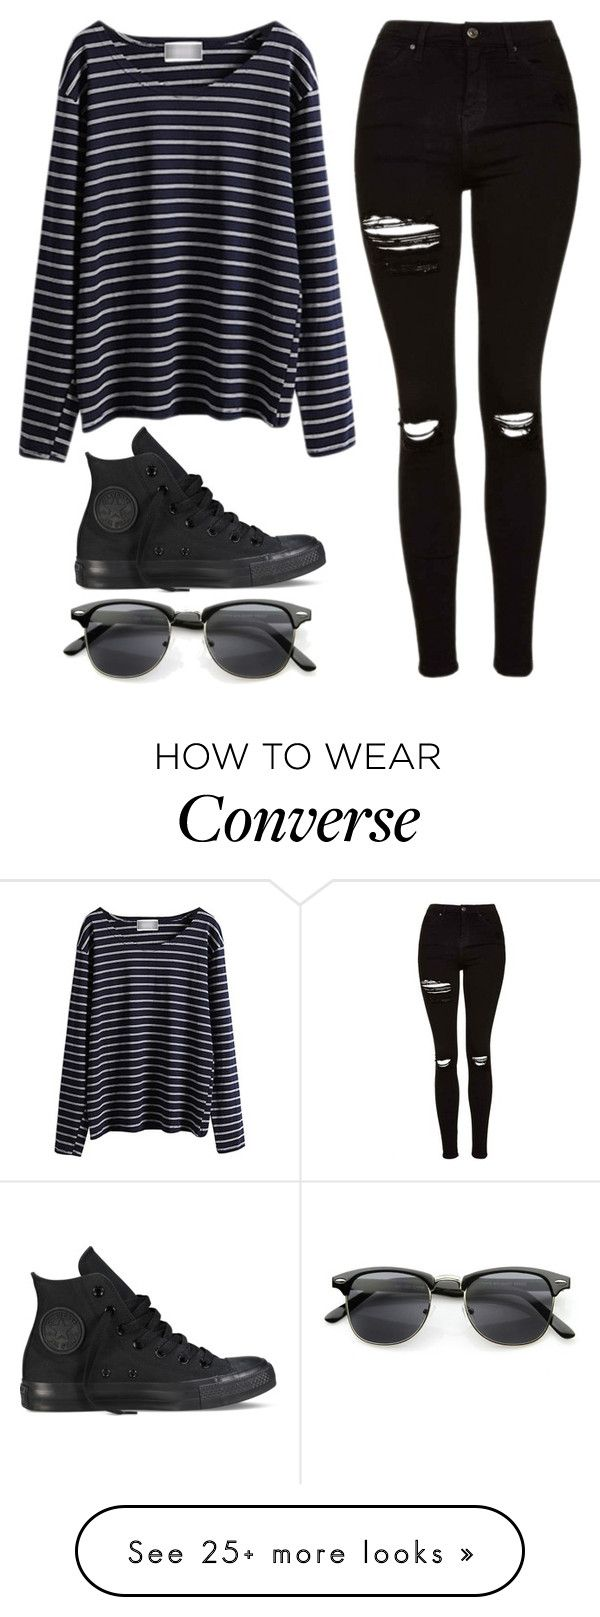 Black converse outfit winter